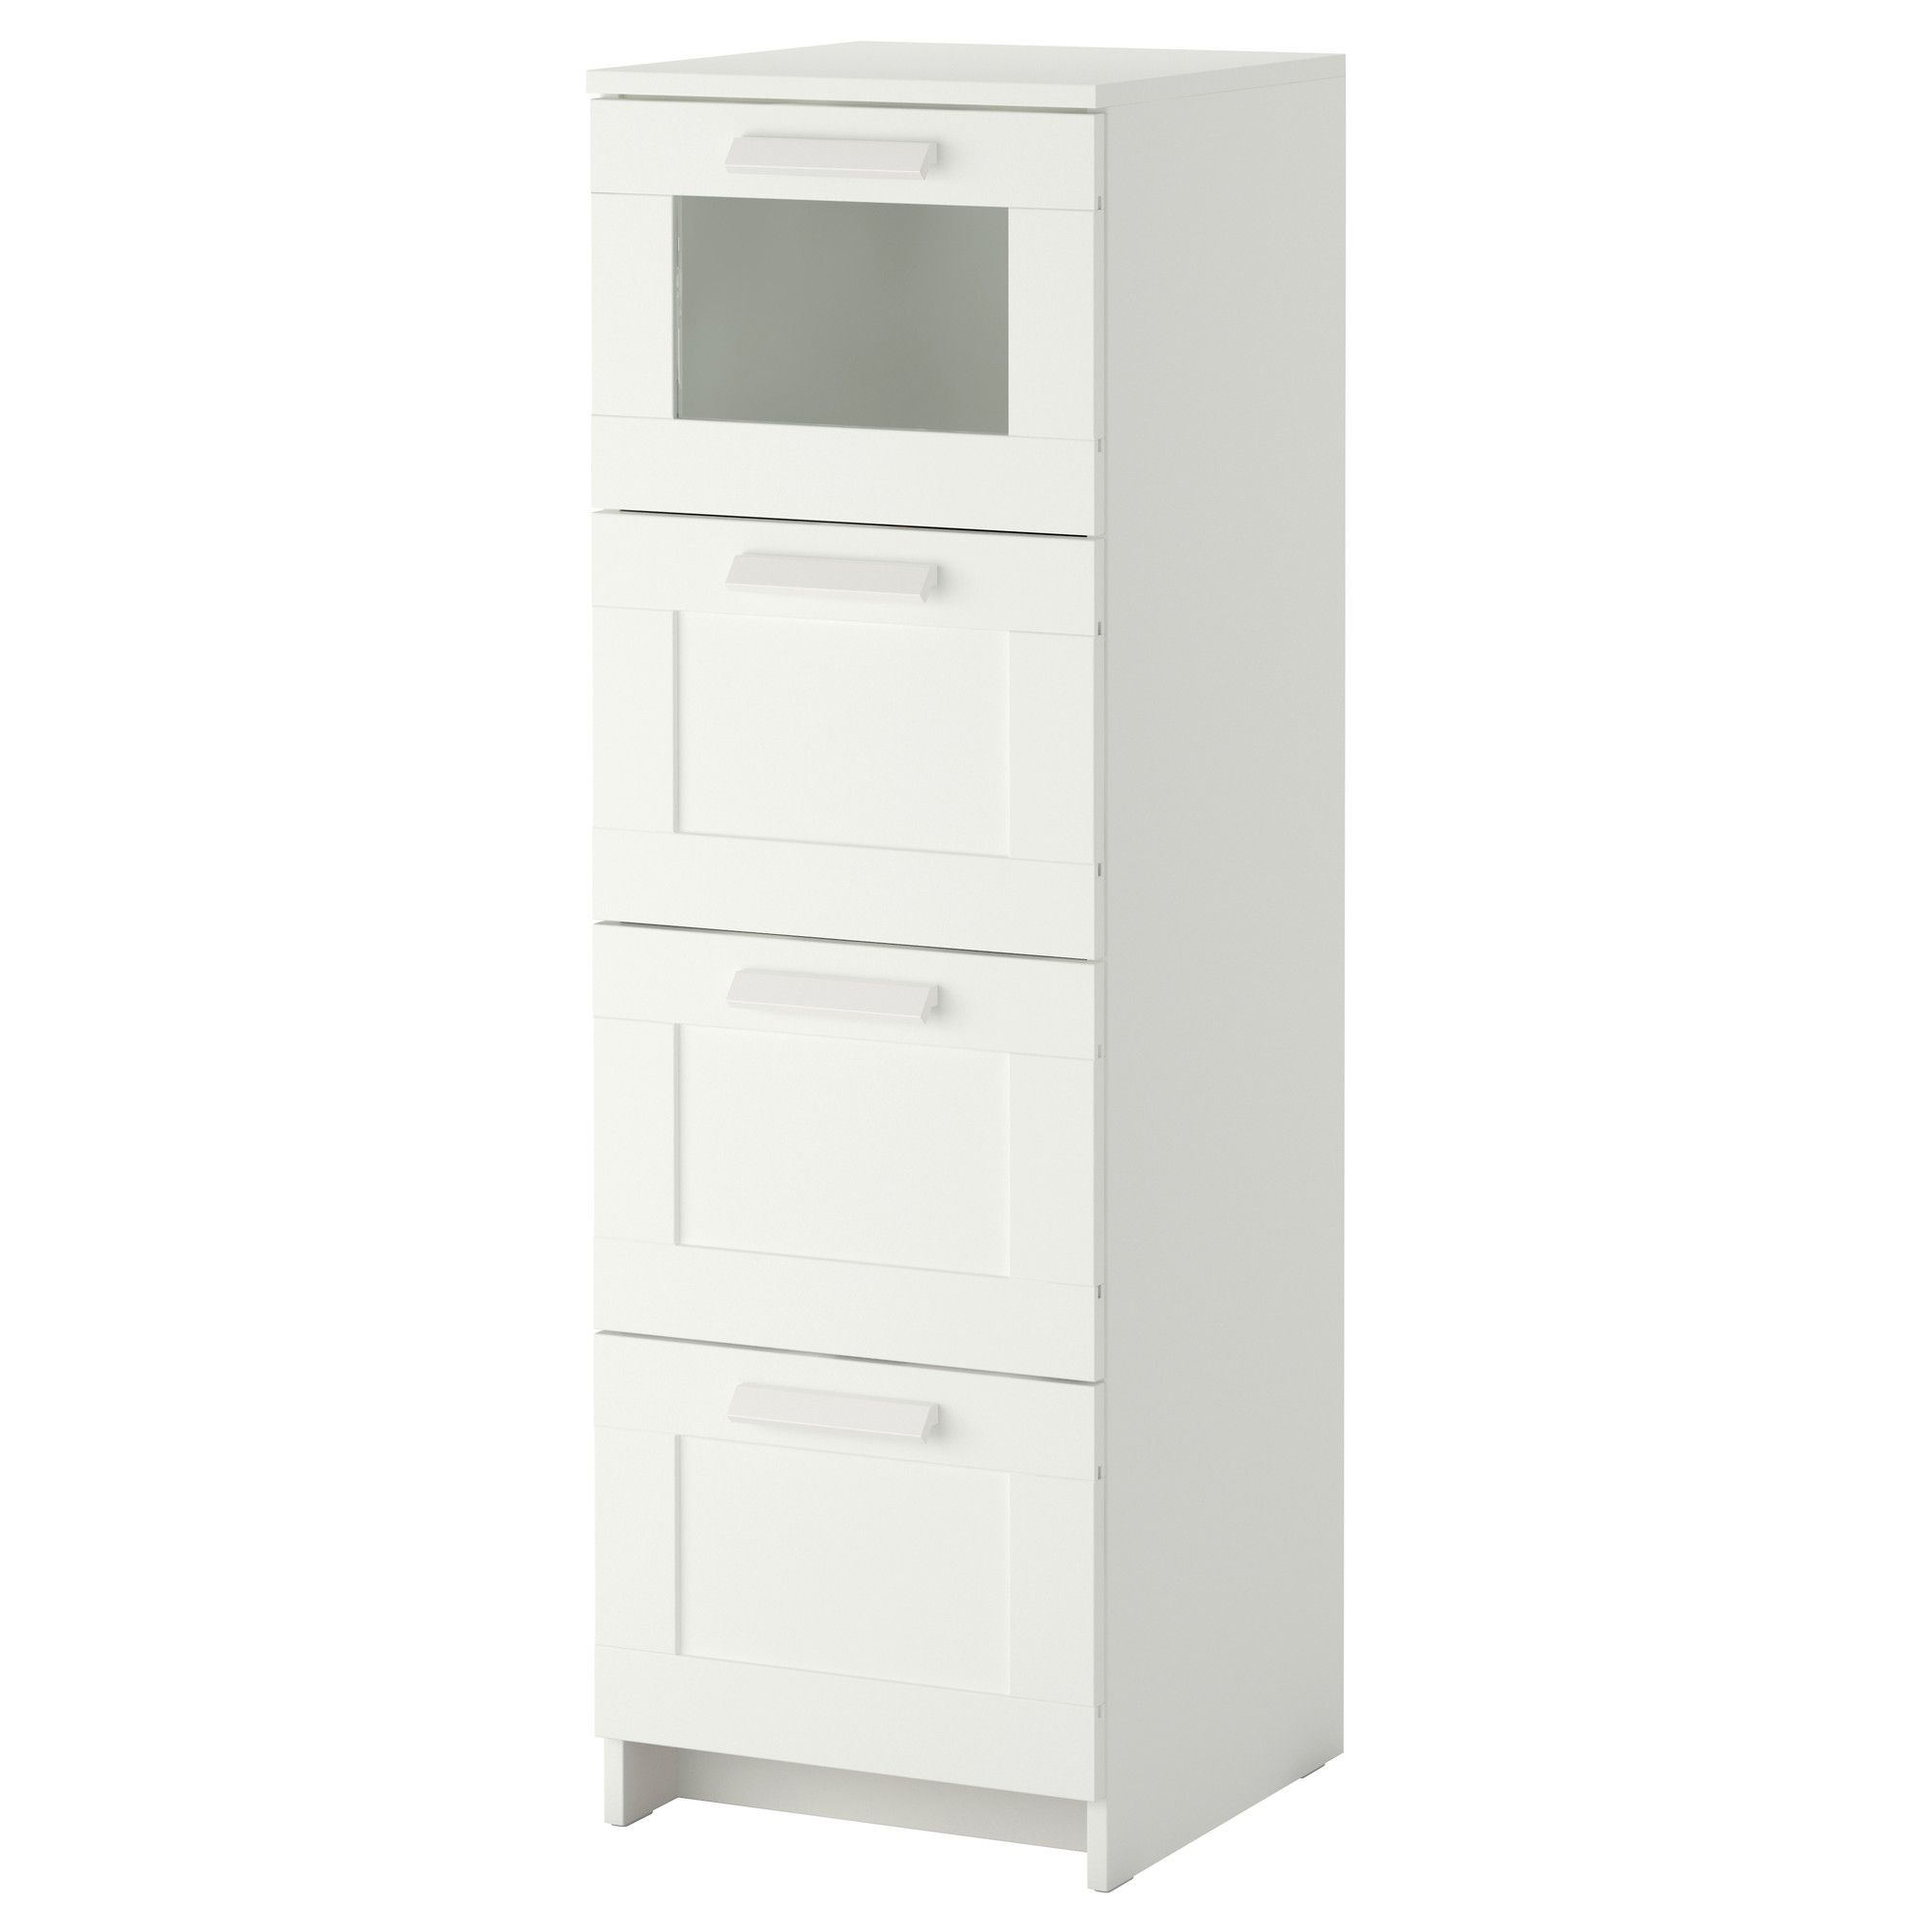 organizers plastic storage photo full closet ikea cool affordable units furniture and drawers shelves with